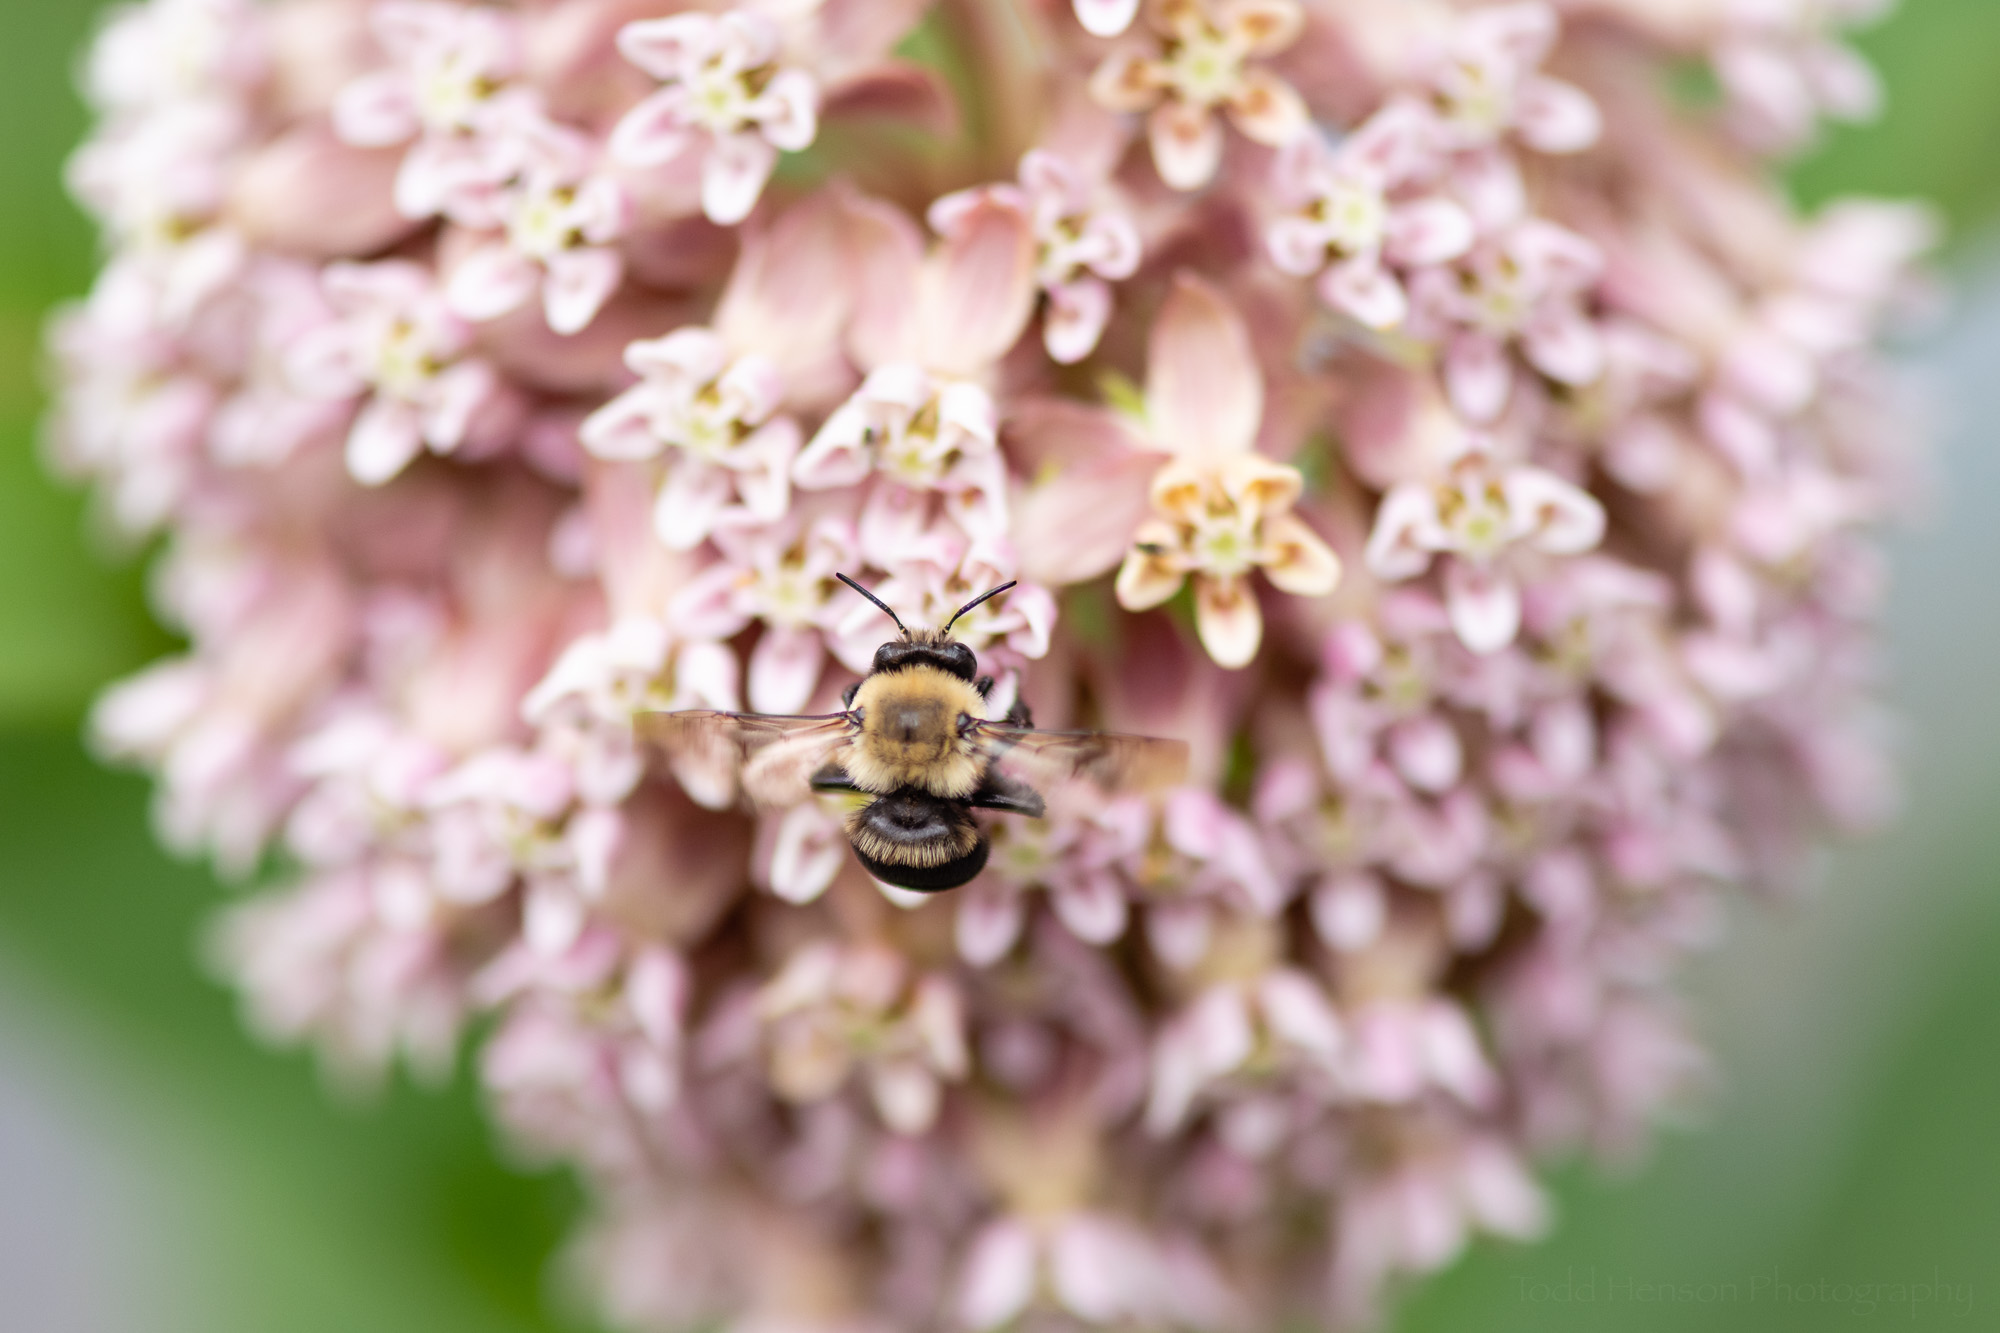 A bumble bee gathering pollen on milkweed.